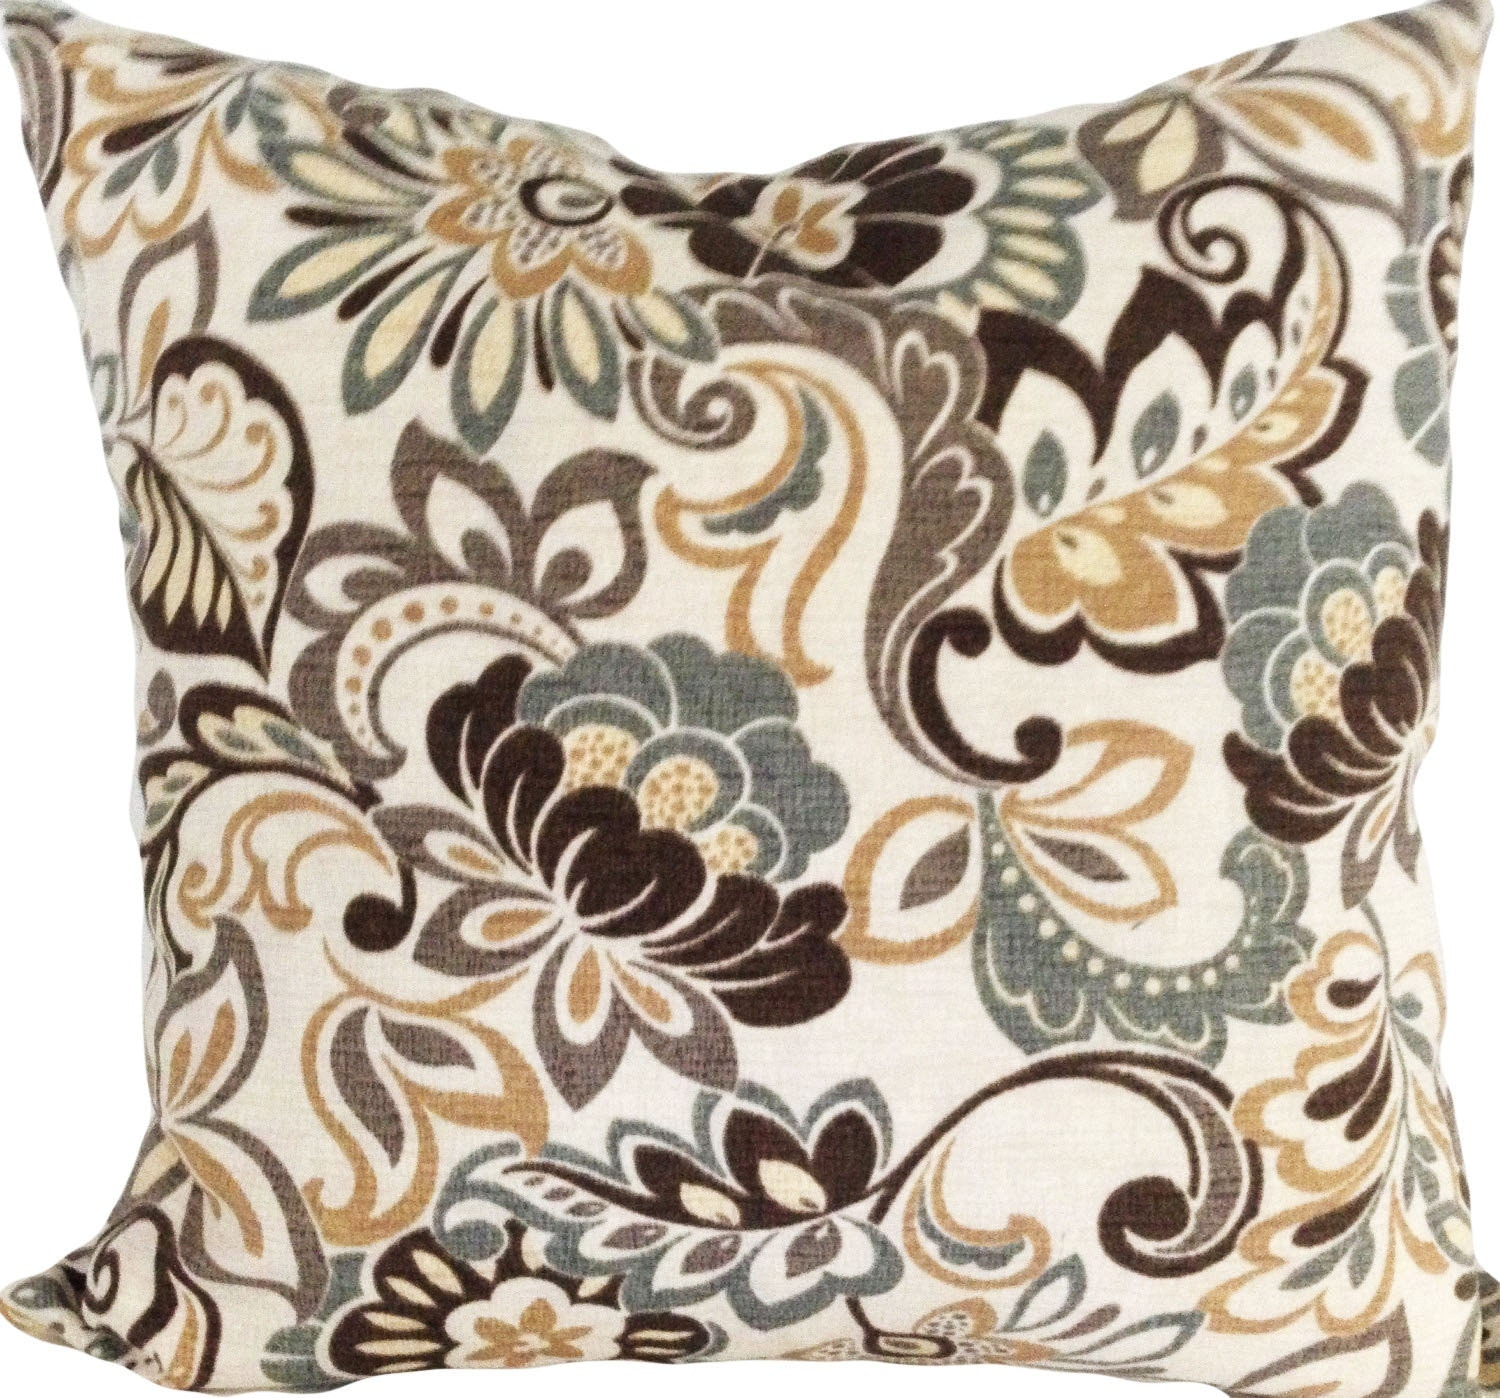 Floral Outdoor Zoe Decorative Pillow Cover Throw Pillow